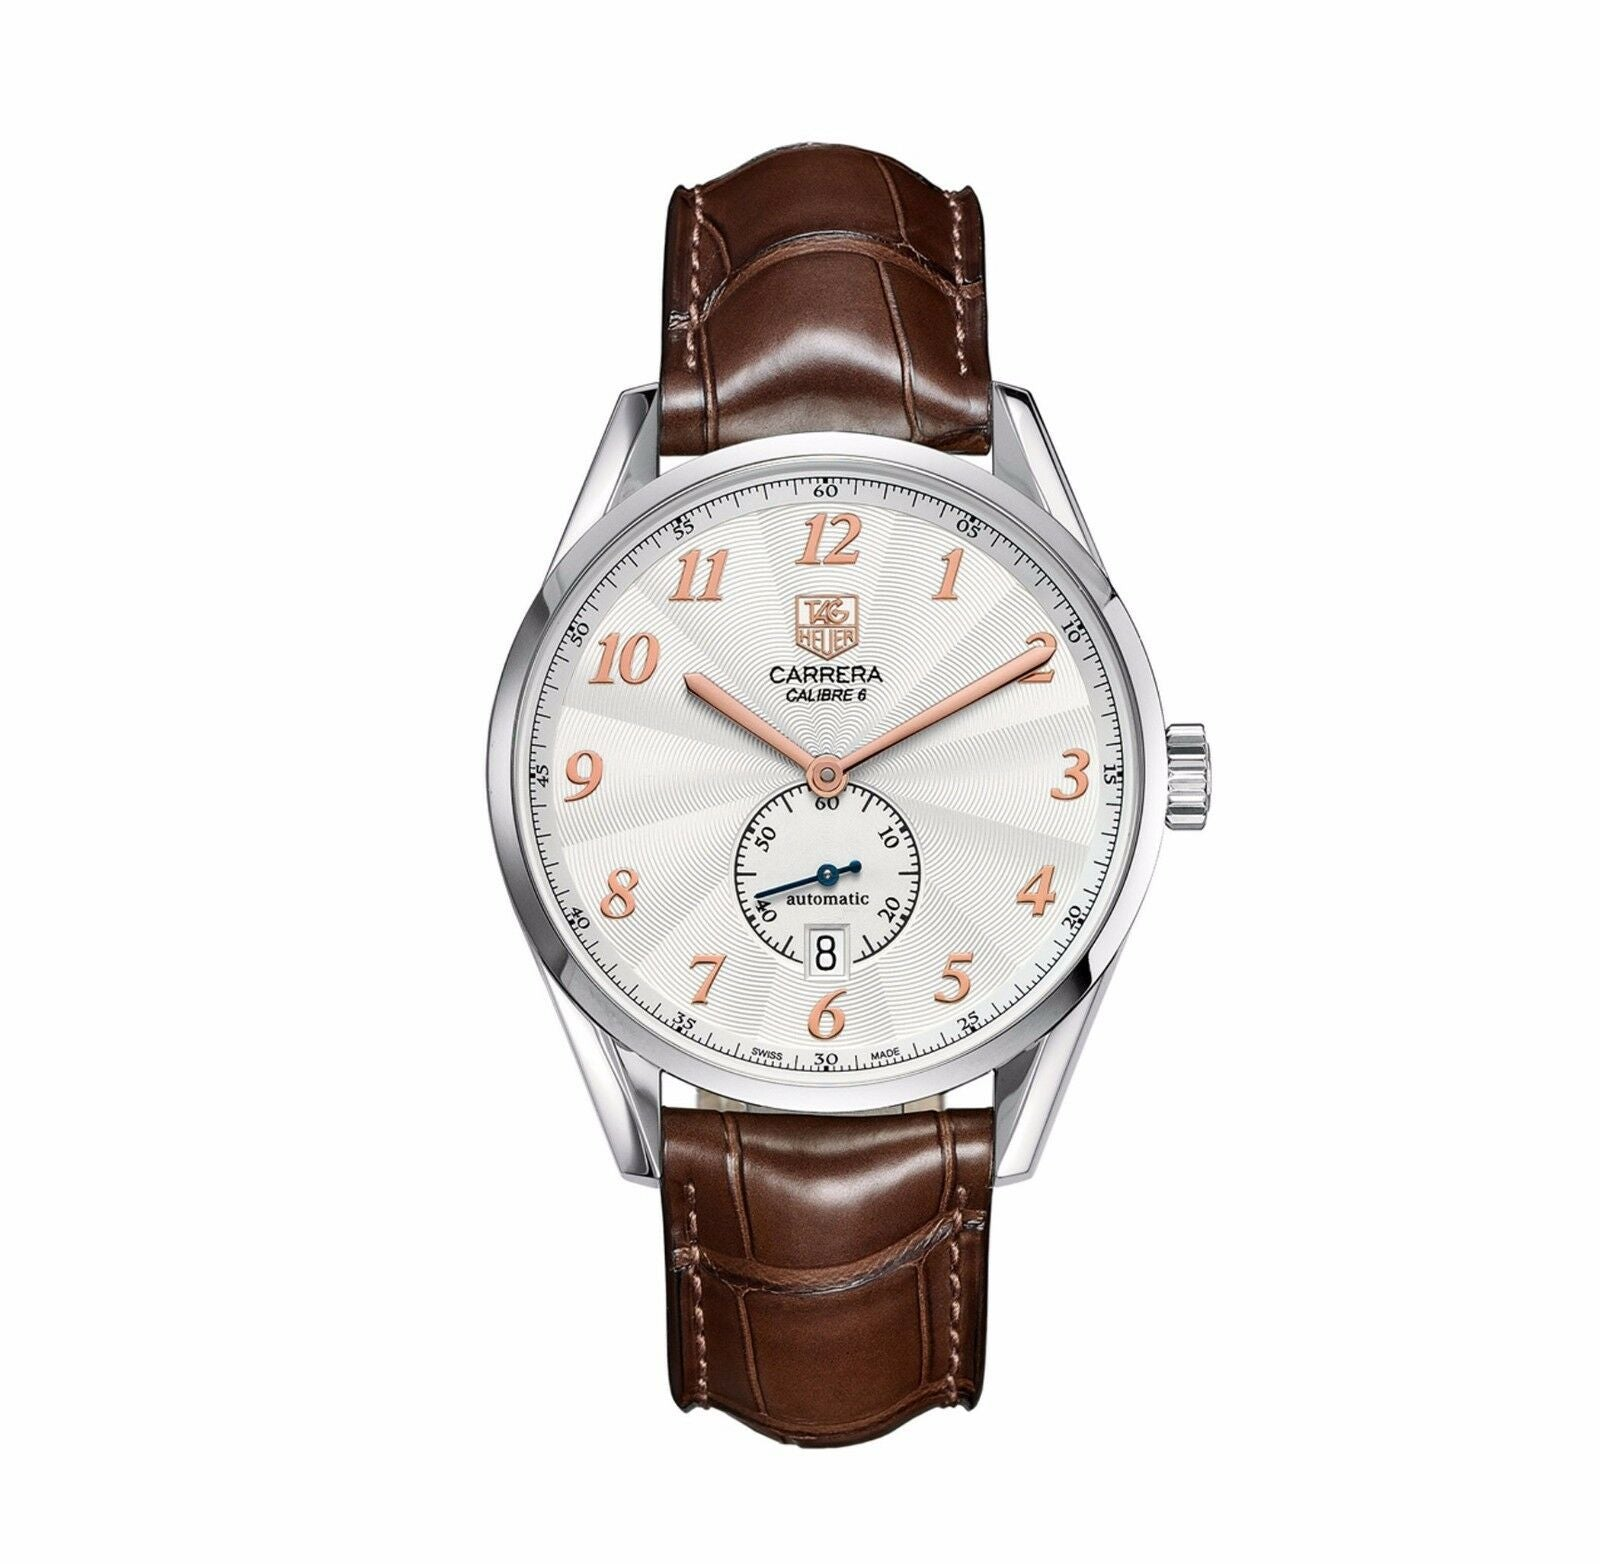 TAG HEUER CARRERA HERITAGE WAS2112.FC6181 AUTO CALIBRE 6 LEATHER BROWN WATCH